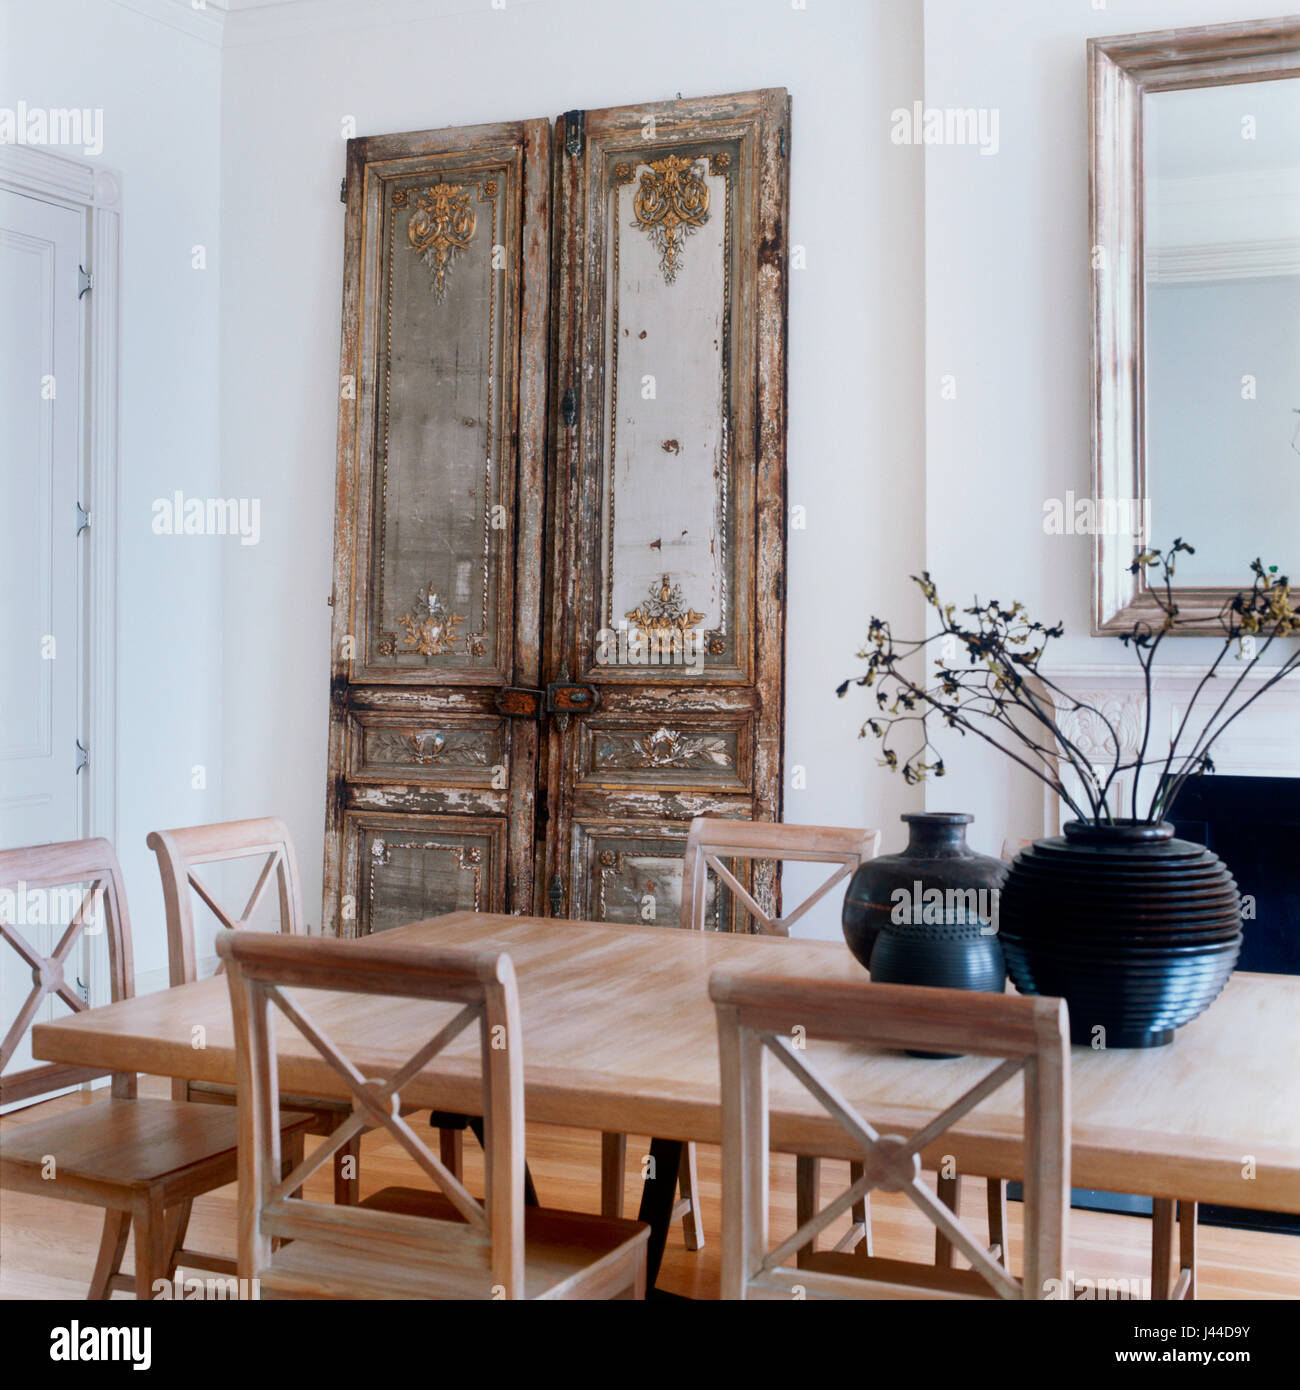 Louis XVI carved chateau doors adds depth and texture to dining room - Stock Image